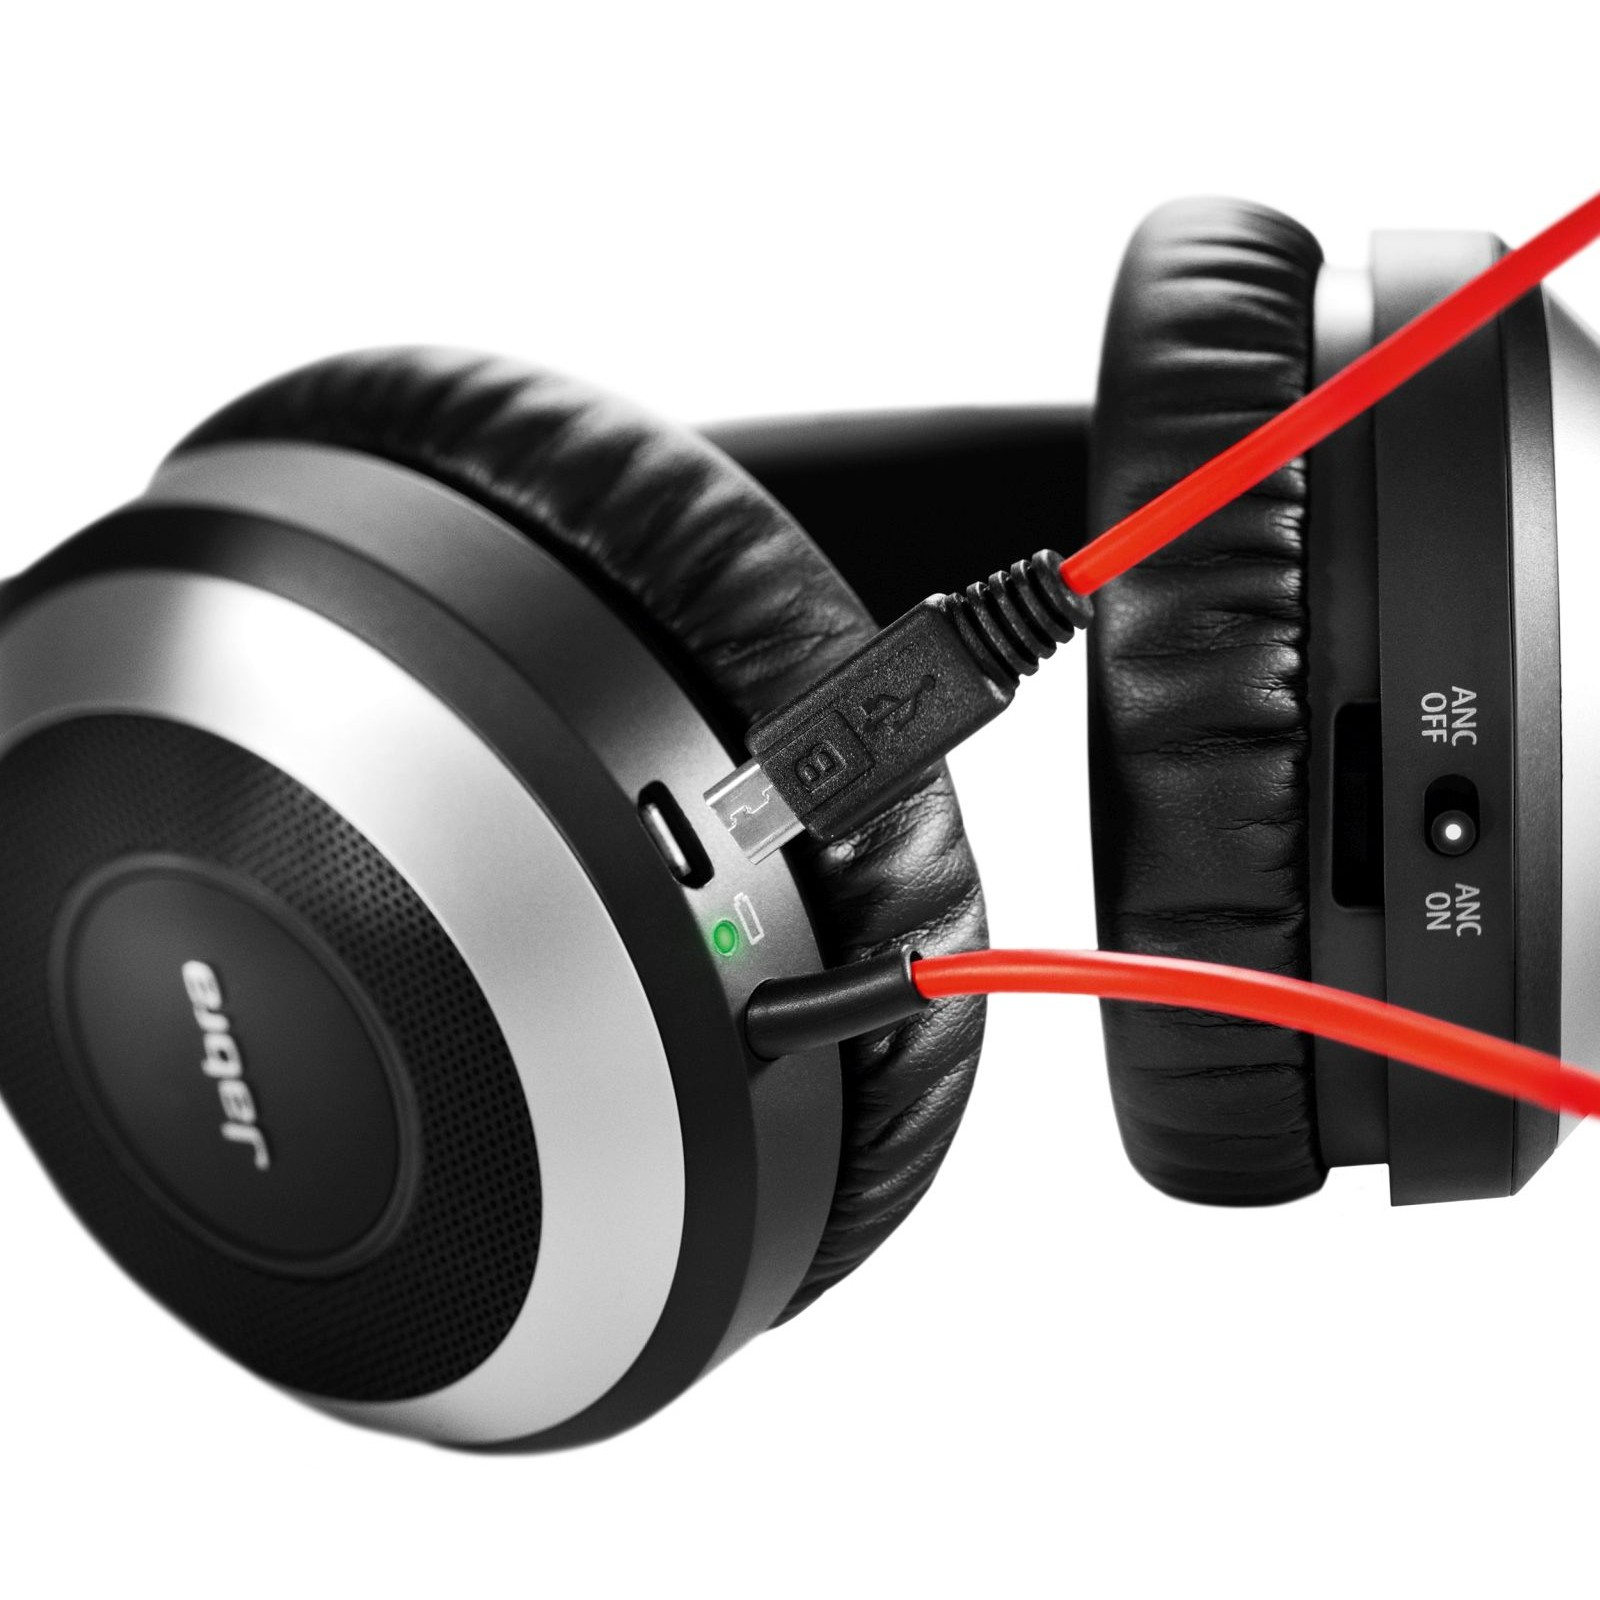 Jabra Evolve 75 Ms Stereo: Jabra EVOLVE 80 MS Stereo Headset For PC, Smartphone